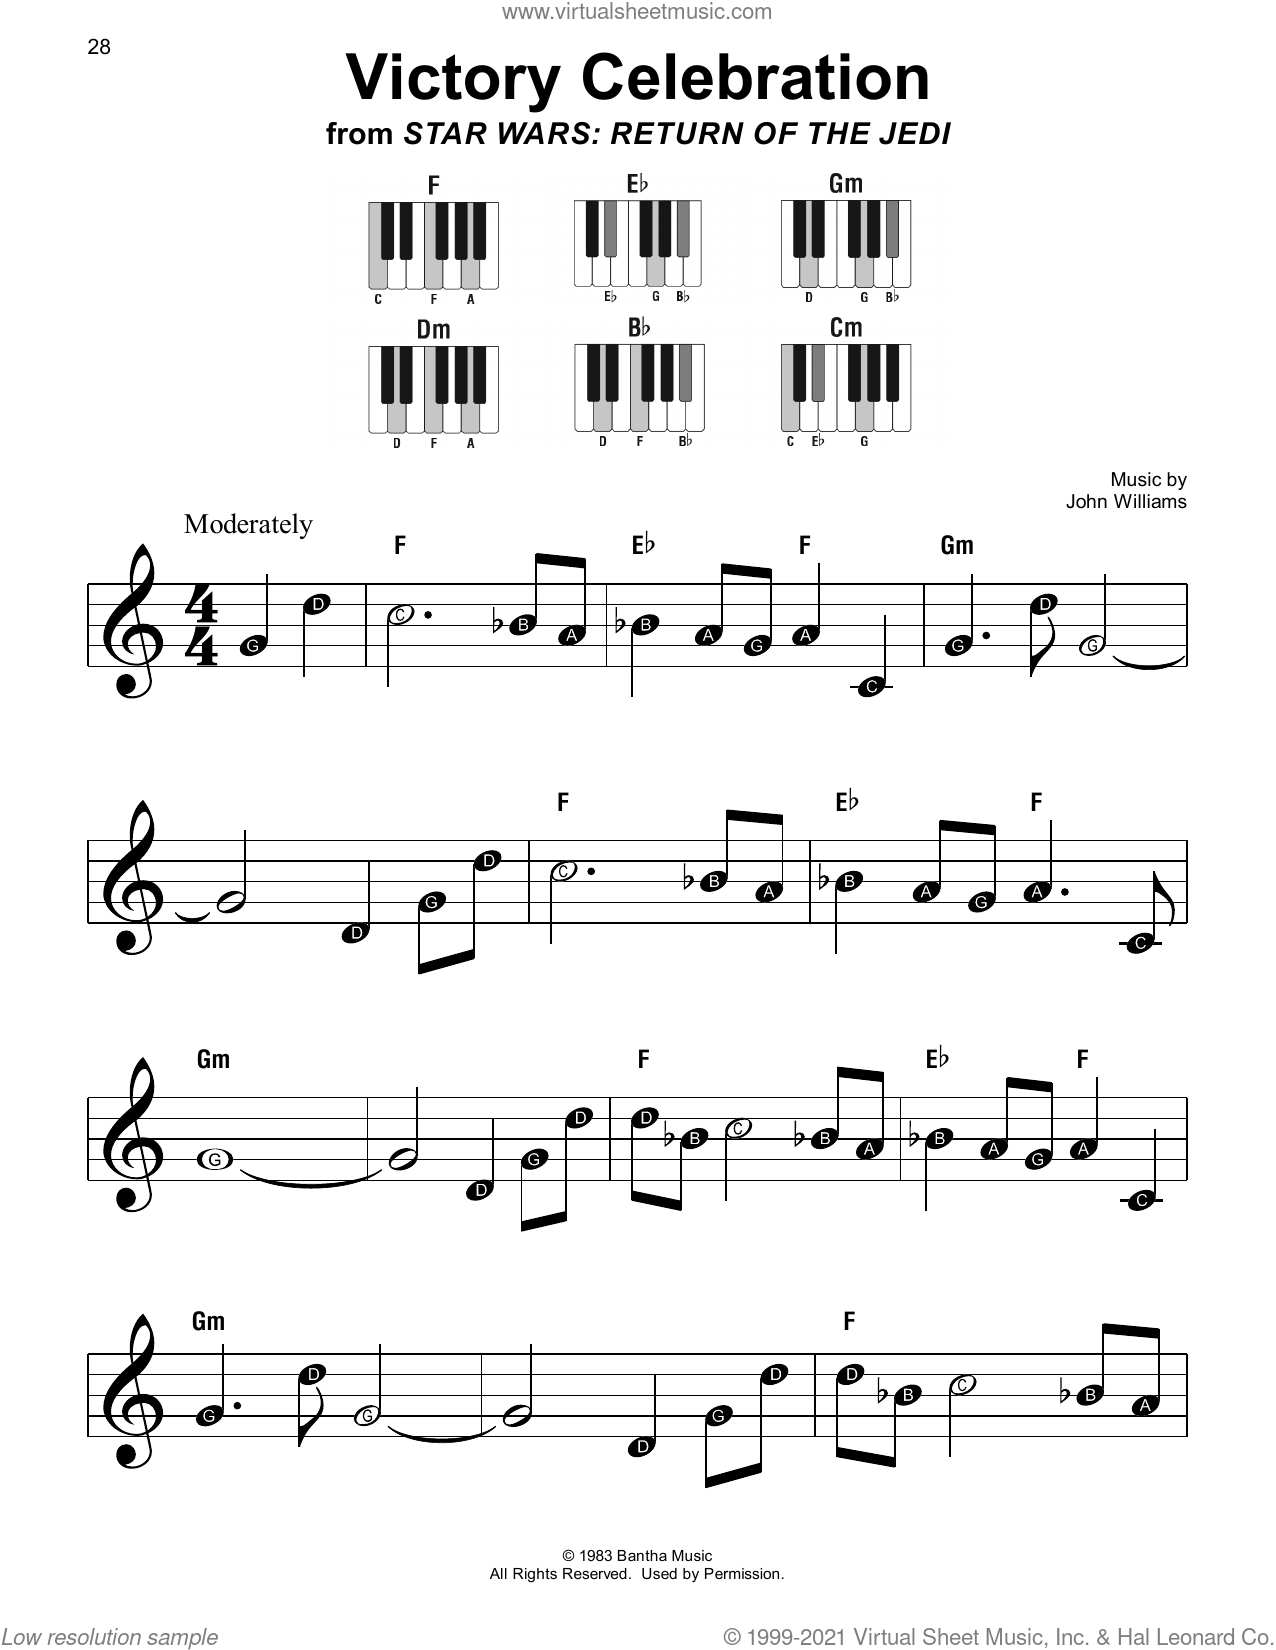 Victory Celebration (from Star Wars: Return Of The Jedi) sheet music for piano solo by John Williams, beginner skill level